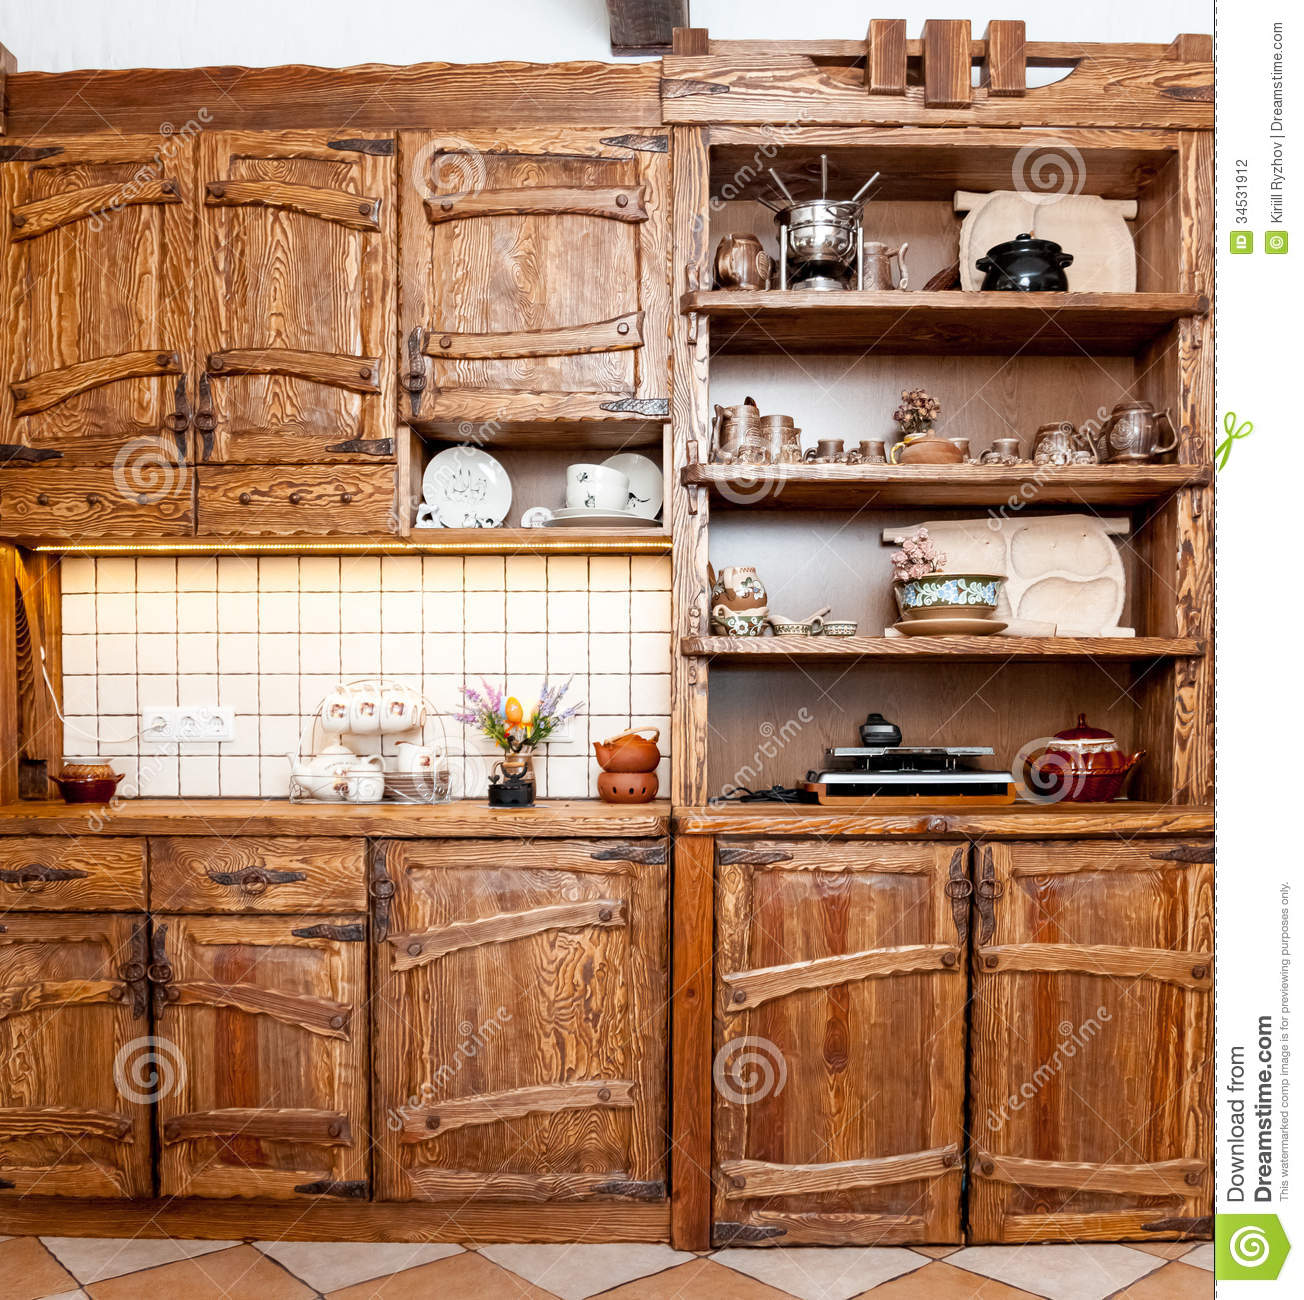 Furniture For Kitchen In Country Style Stock Photography - Image